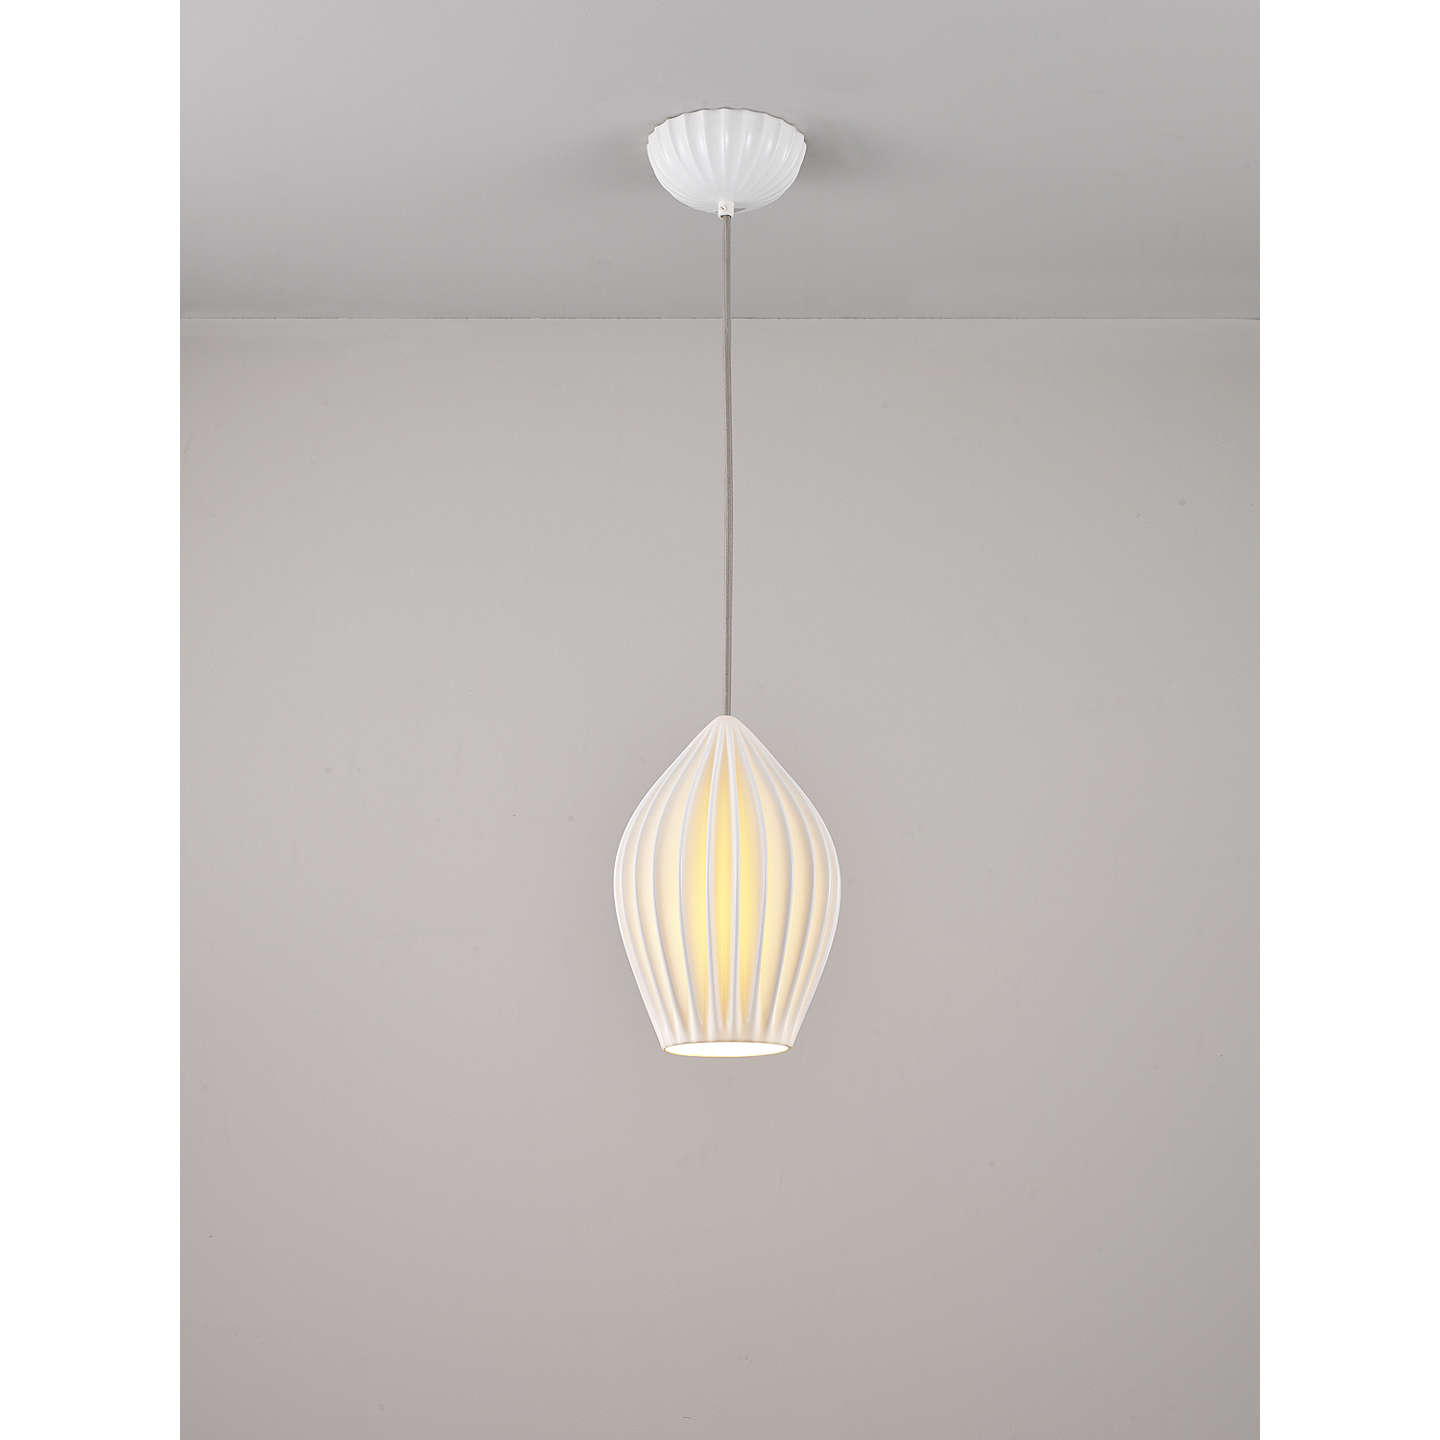 lighting dar gaucho image gloss type large from fitting in white pendant